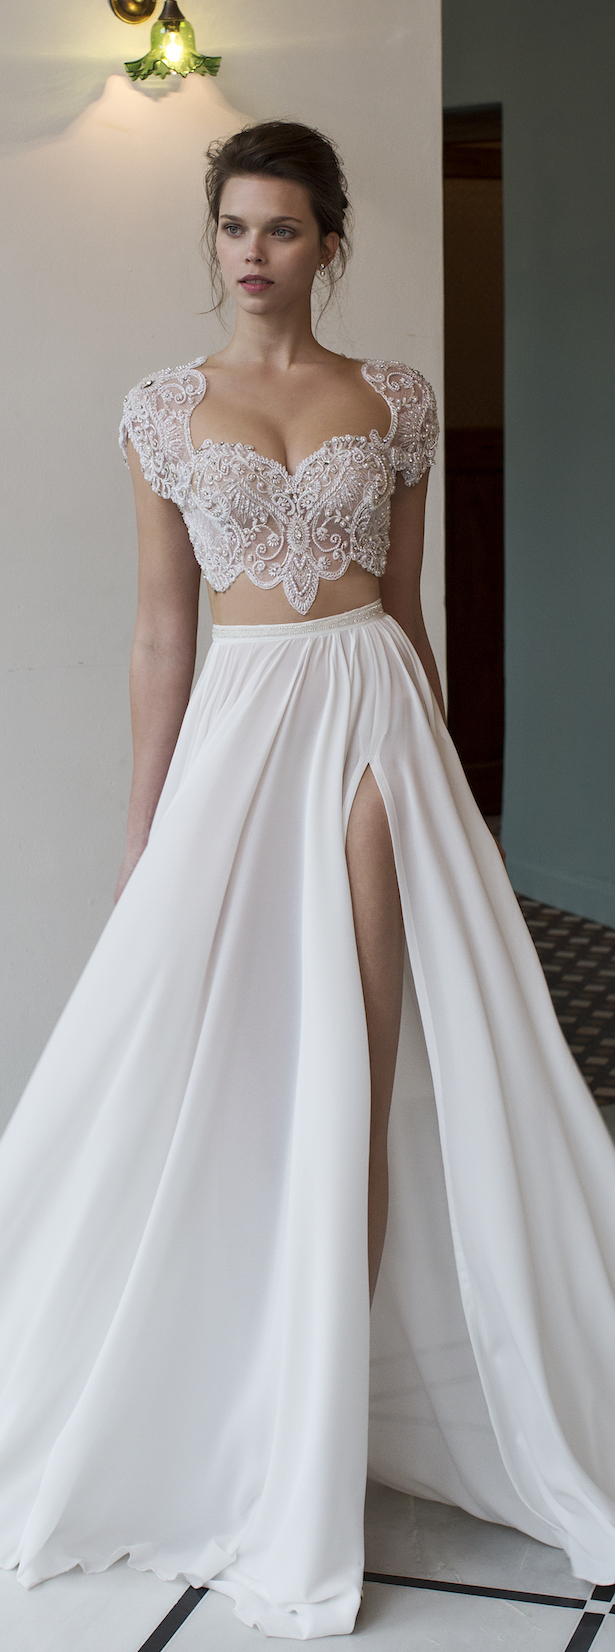 Bridal Trends: Two- Piece Wedding Dresses - Belle The Magazine